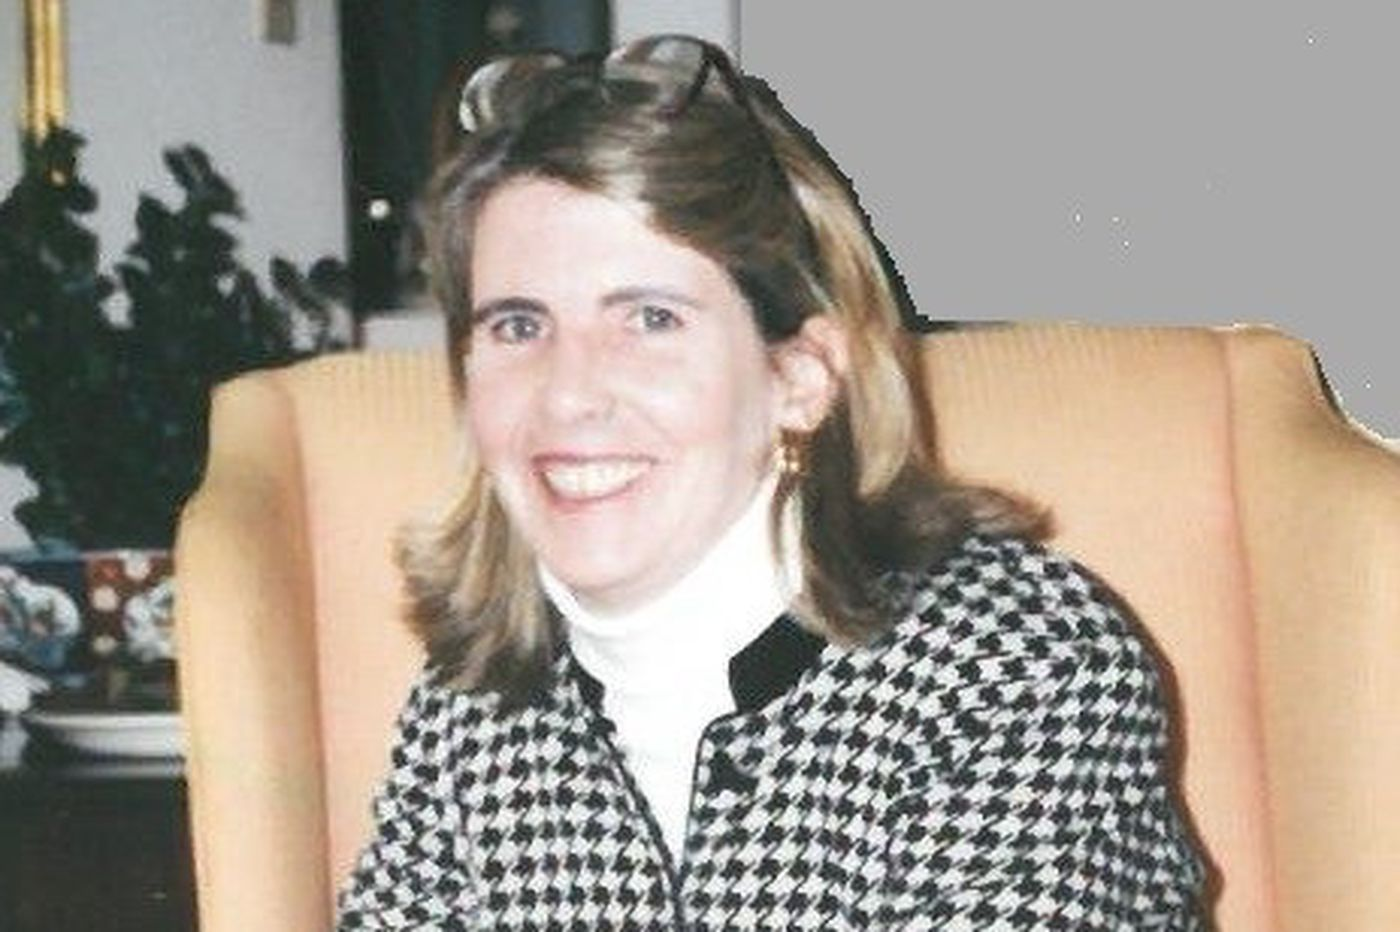 Margaret Mary Kiely, lawyer who recruited for firms, then represented seniors, dies at 65